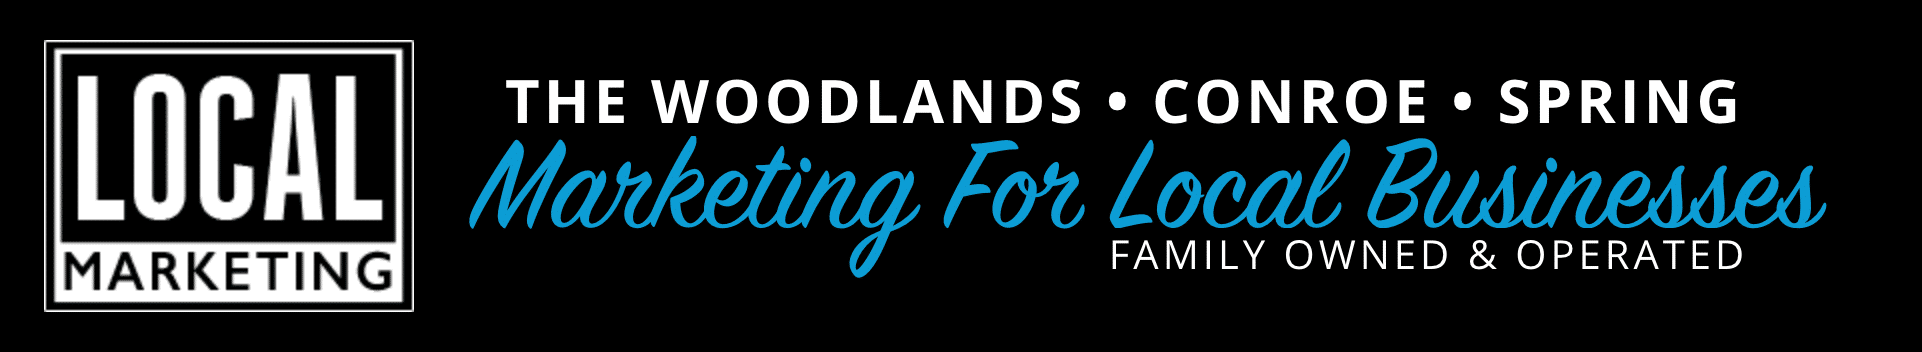 Local Marketing in The Woodlands, Conroe and Spring